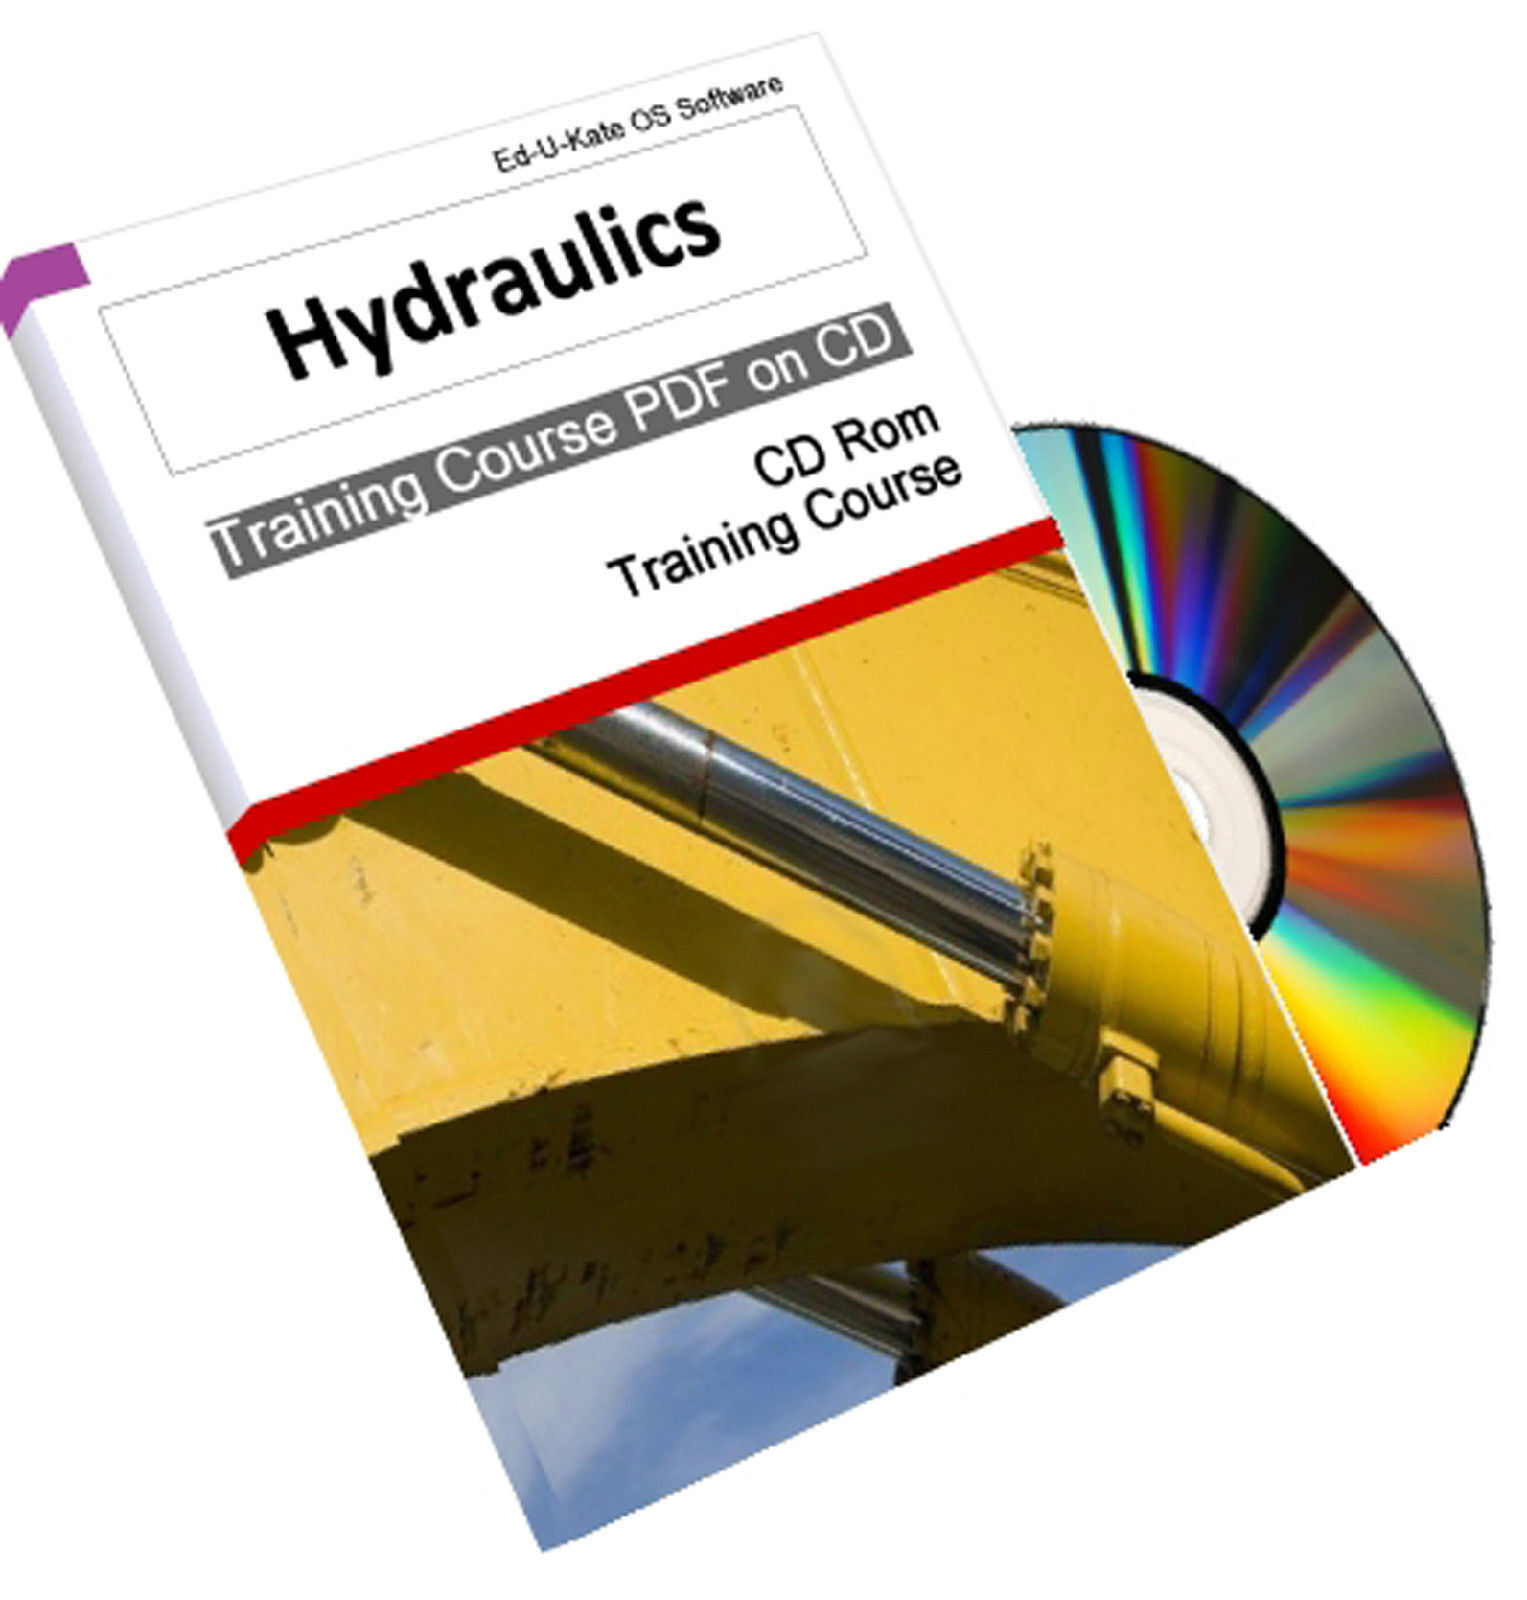 Hydraulics Pump Valve RAM Fluid Training Course System Structures Manual CD  Book